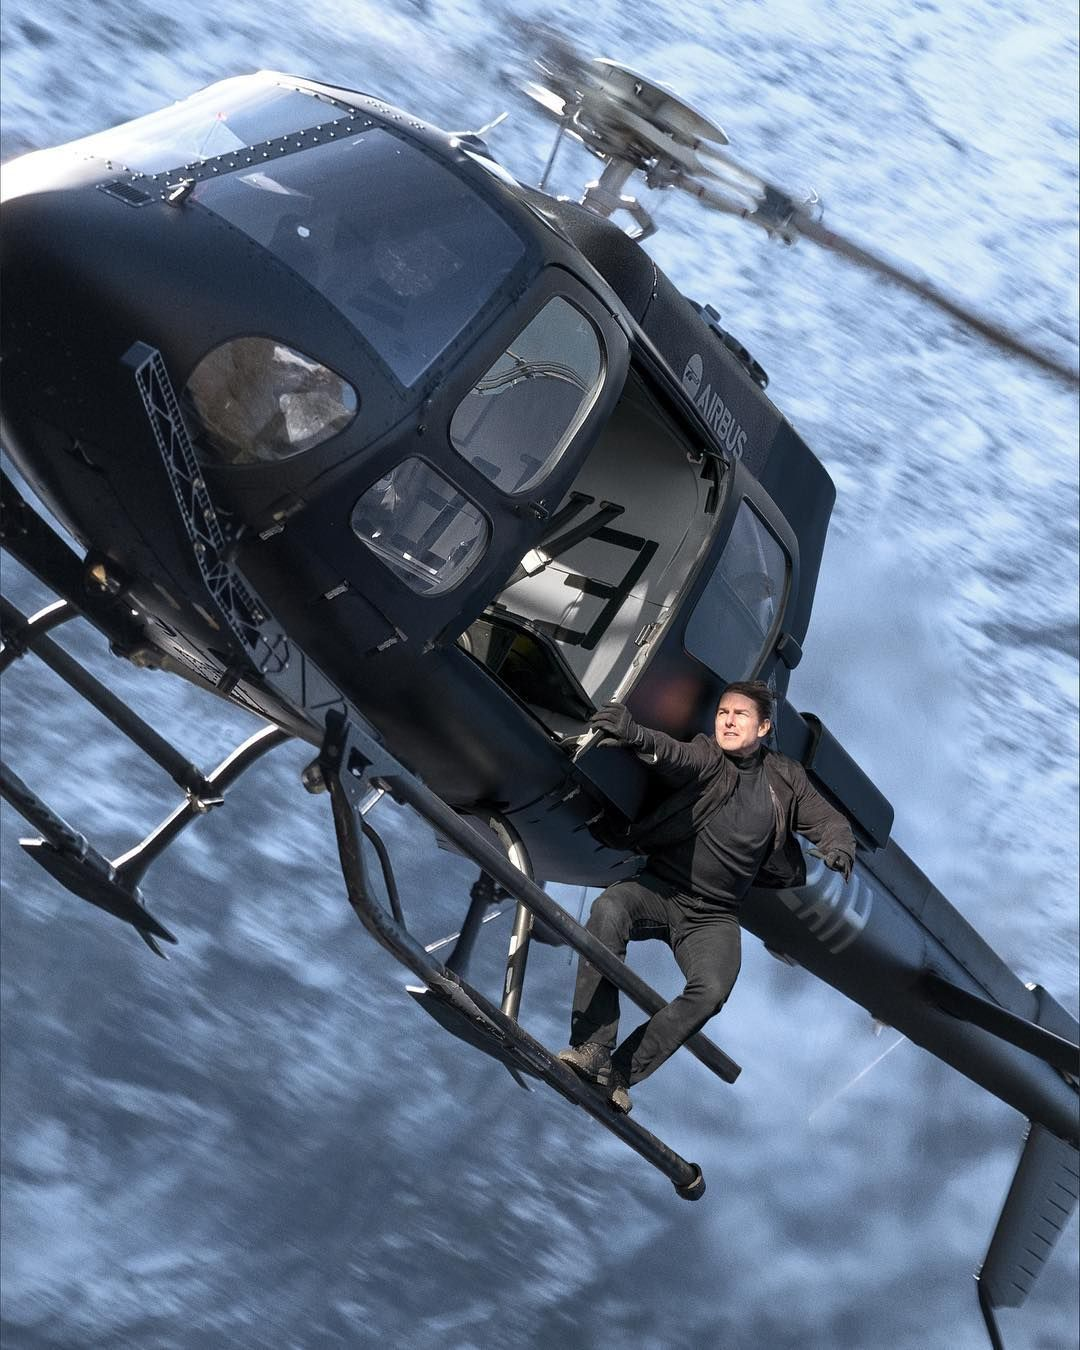 mission impossible 6 title new image revealed by tom cruise collider. Black Bedroom Furniture Sets. Home Design Ideas